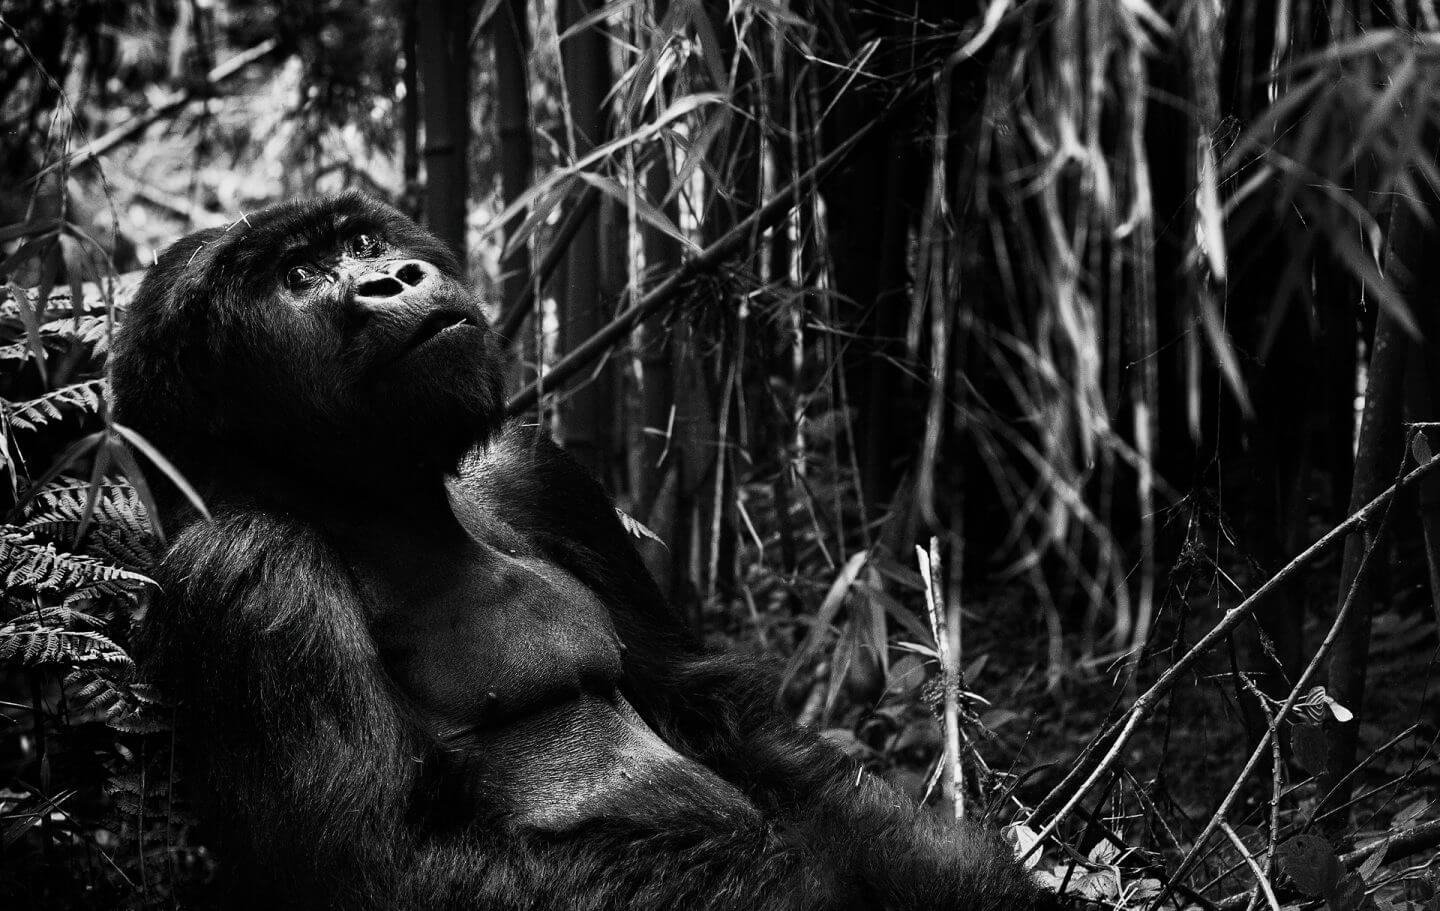 Black and white version of gorilla in rainforest